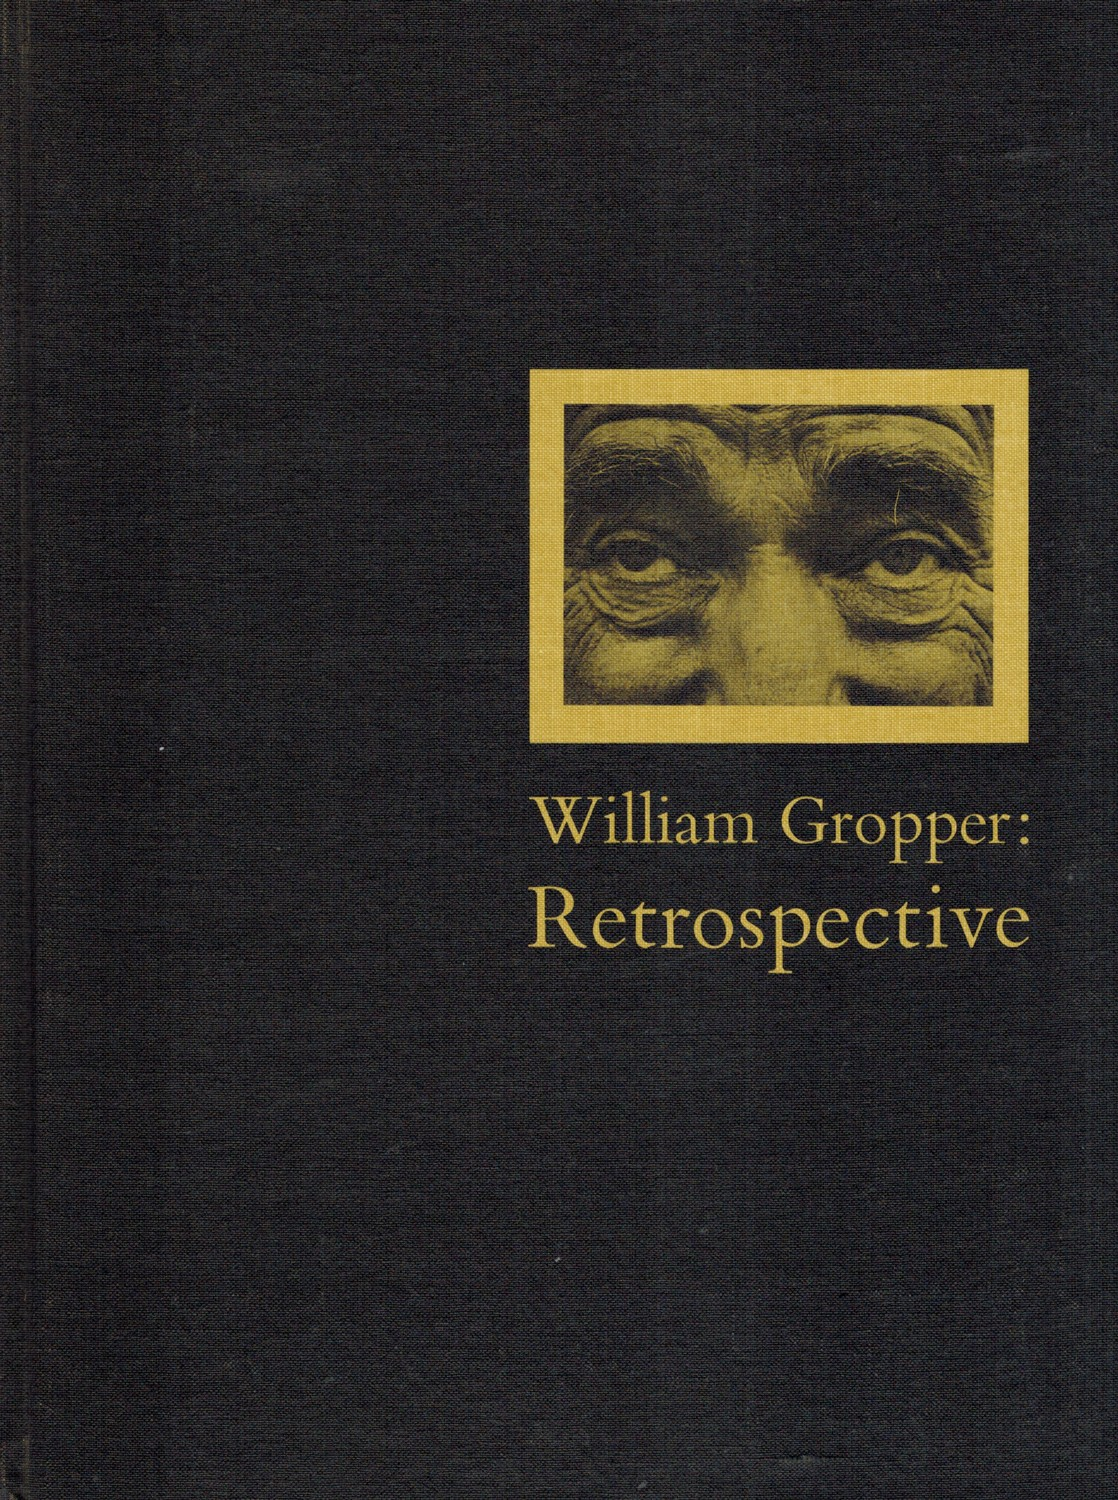 (GROPPER, WILLIAM). FREUNDLICH, AUGUST L. & WILLIAM GROPPER - WILLIAM GROPPER: RETROSPECTIVE - DELUXE SLIPCASED EDITION WITH A SIGNED LITHOGRAPHED